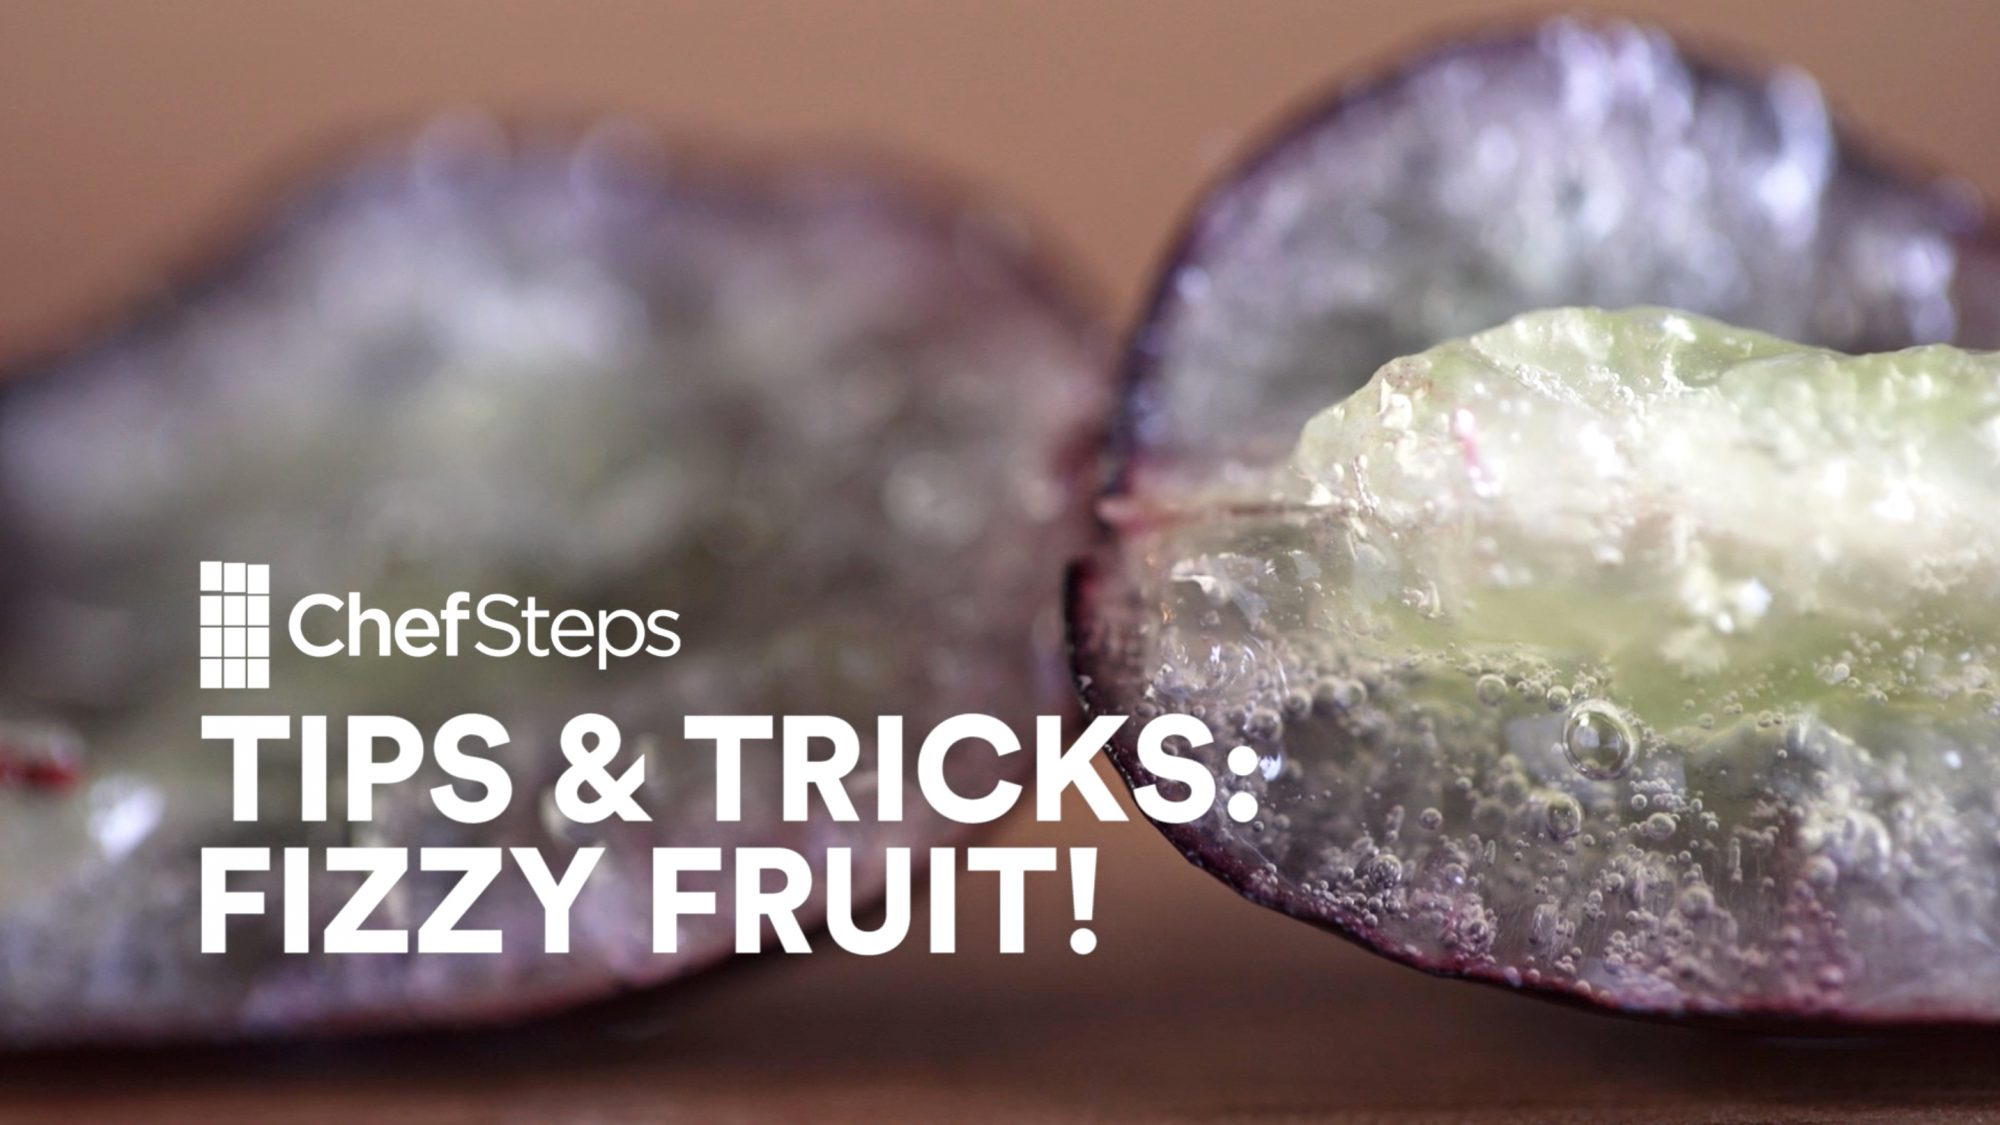 How to Make Amazing Fizzy Fruit